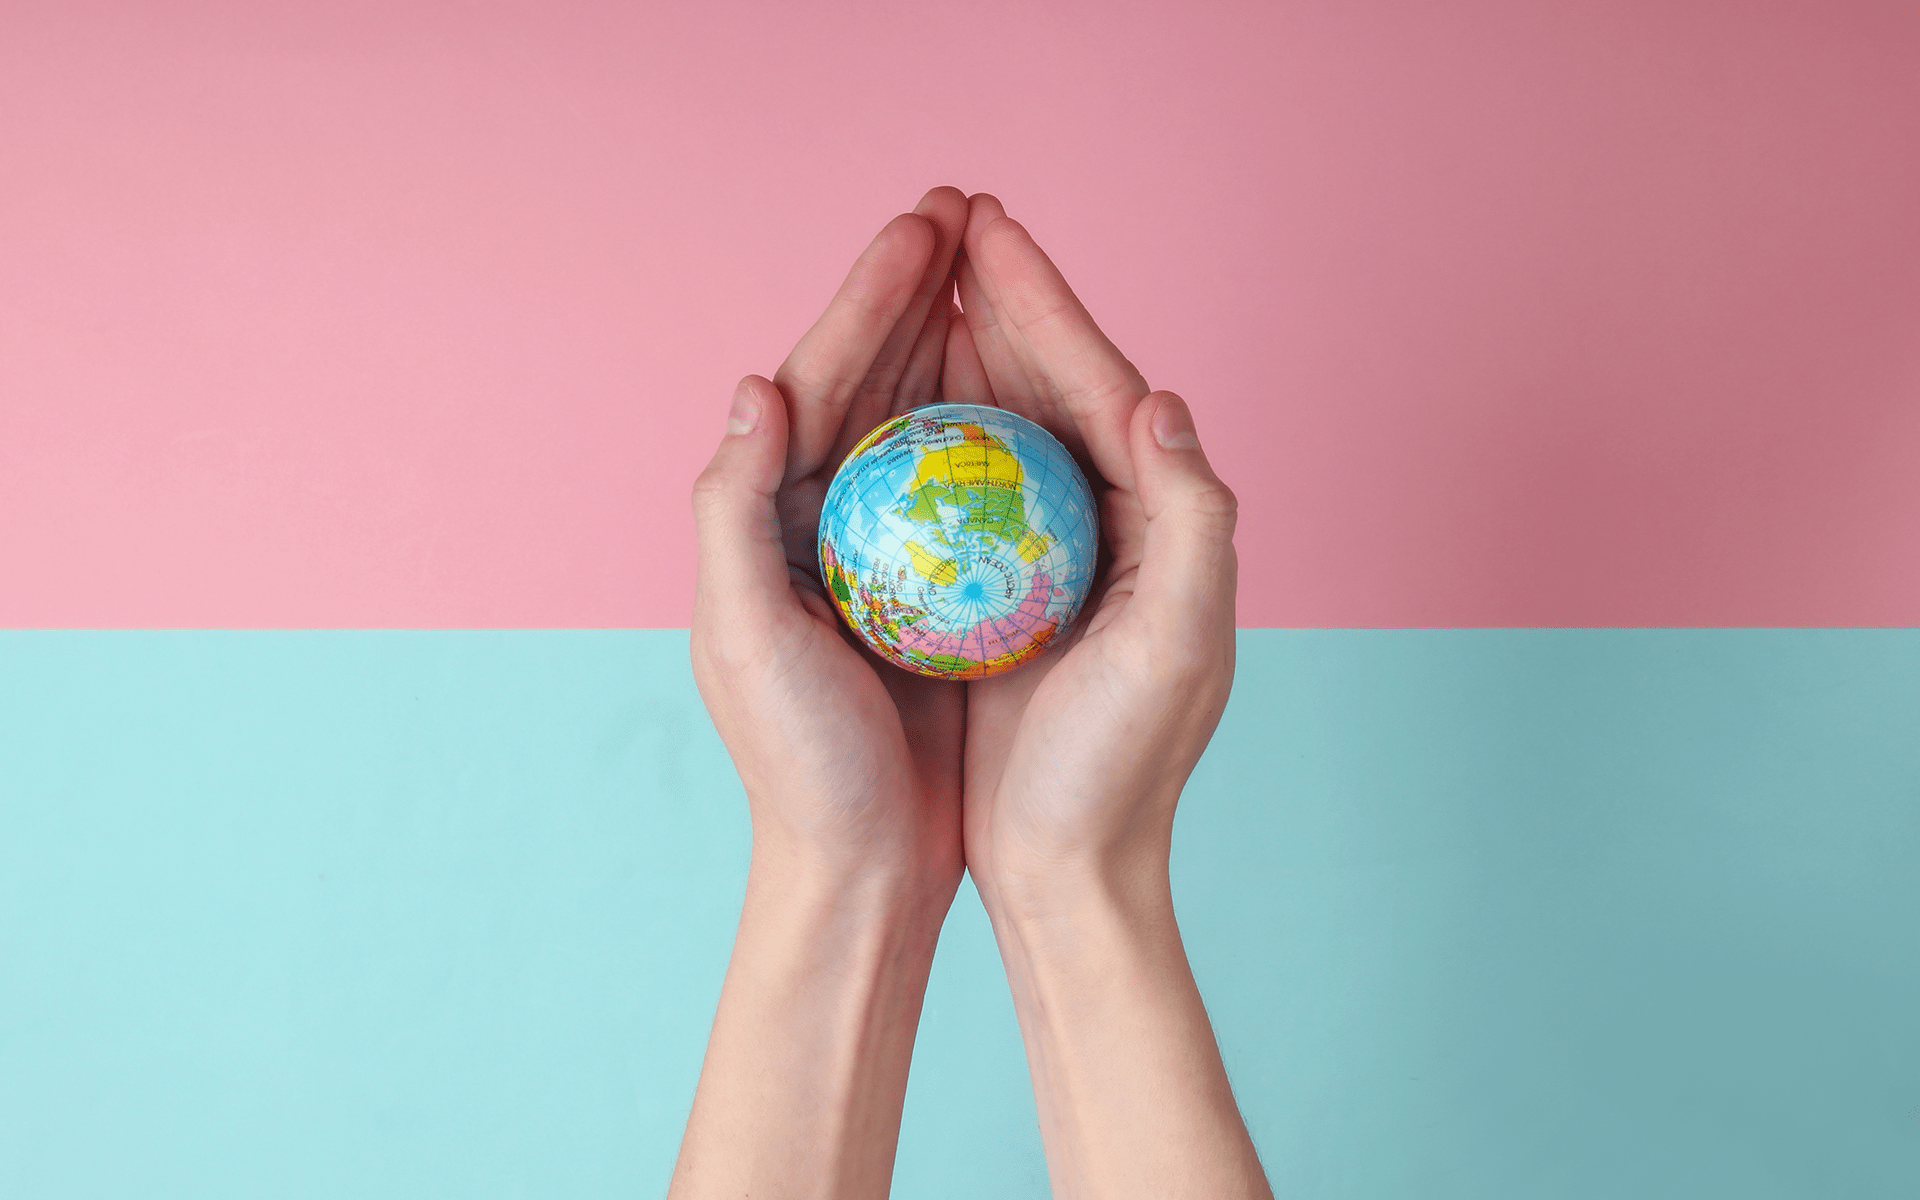 Do You Know How You Can Change the World?—We look down on someone's hands that are cupped together holding a small globe. The top half of the background is pink and the bottom half is light blue.